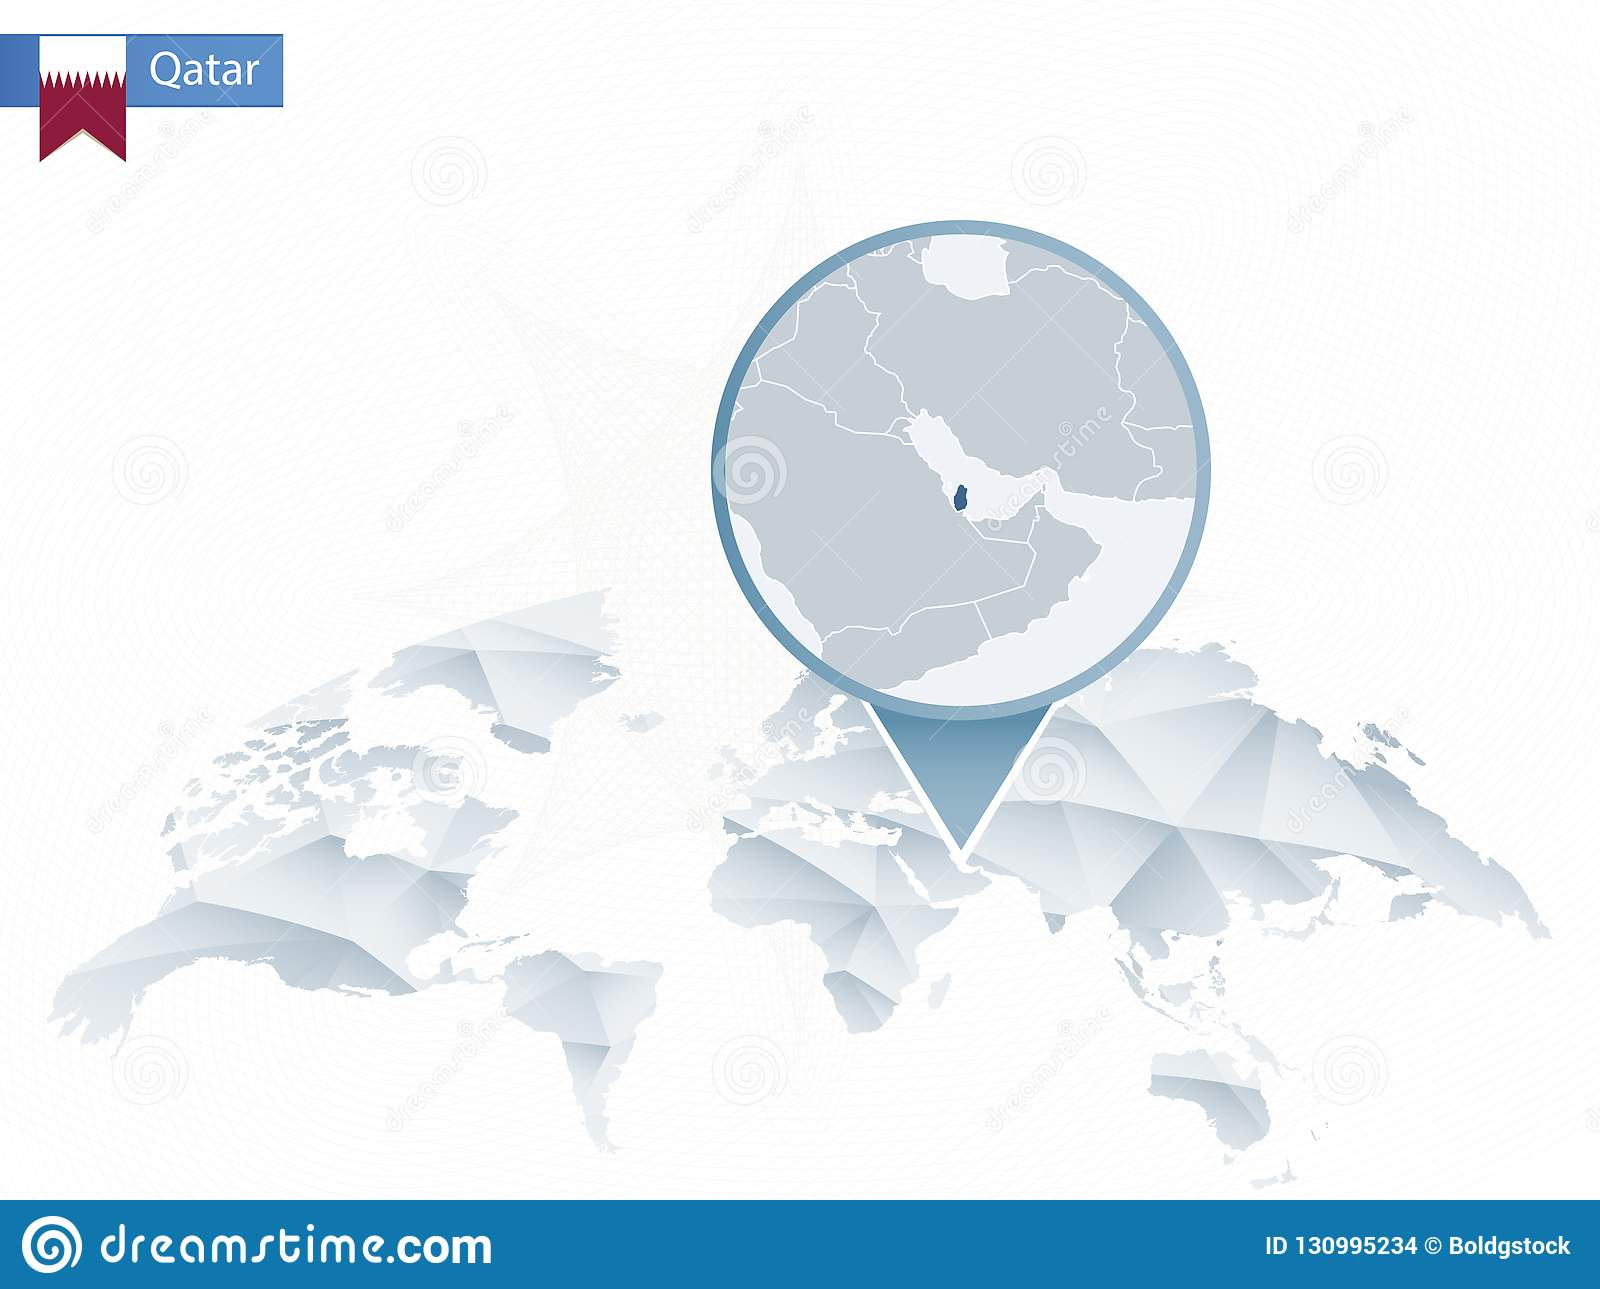 Abstract Rounded World Map With Pinned Detailed Qatar Map ... on world map uae, world map in bangladesh, world map in norway, world map in chile, world map in nigeria, world map in china, world map kuwait, world map in arabic, world map in sri lanka, world map iraq, world map in france, world map in austria, world map jordan, world map in russia, world map in england, world map bahrain, world map in vietnam, world map doha, world map in english, world map in french,